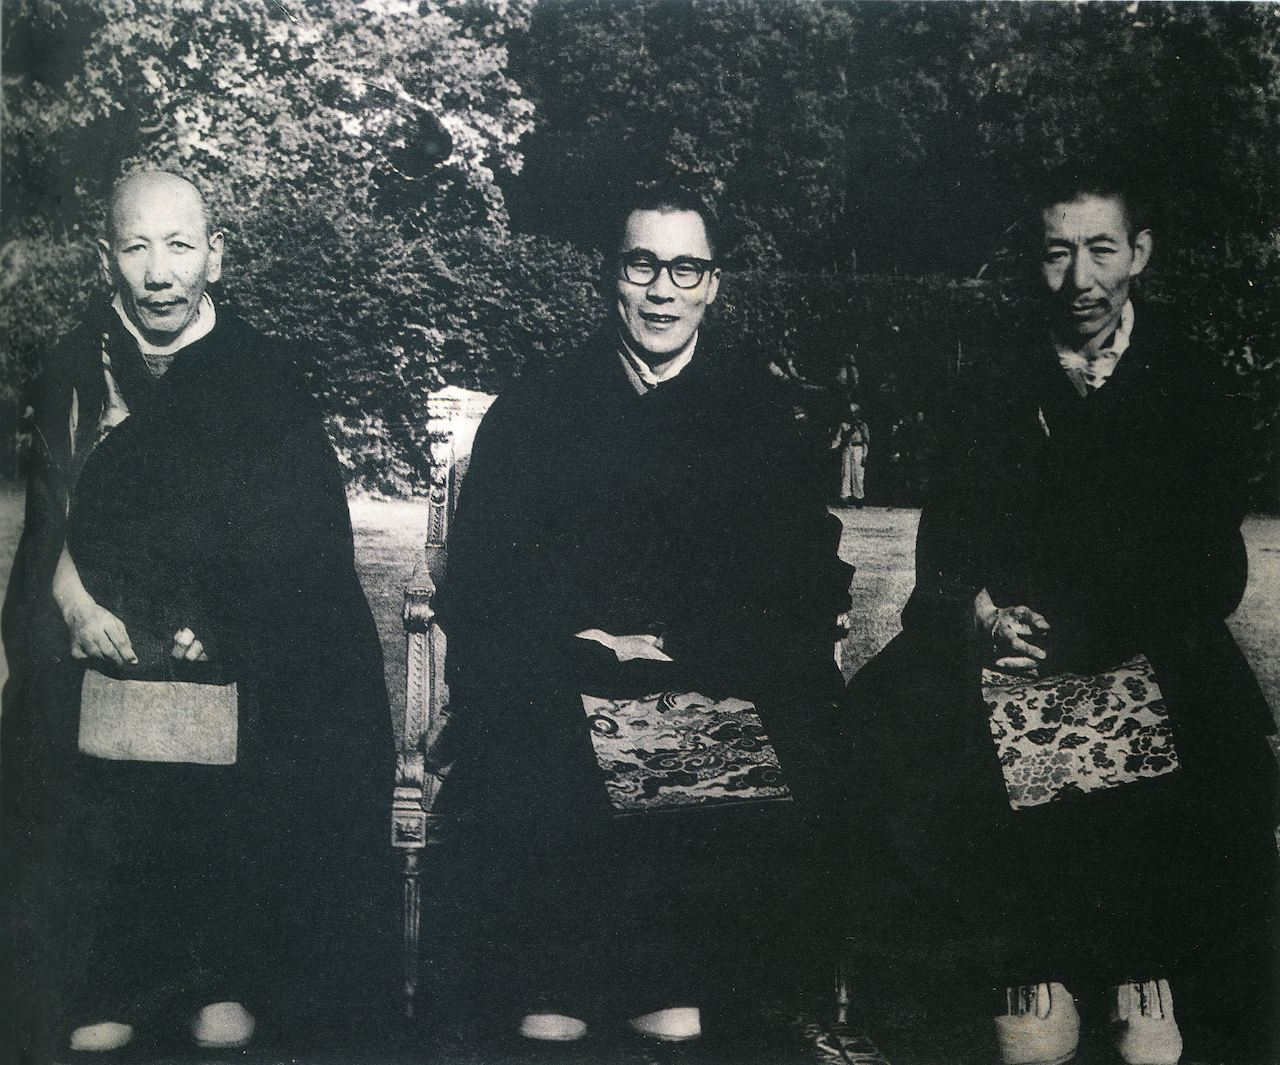 Picture of H.H. the 14th Dalai Lama and his two tutors, Kyabje Ling Rinpoche (left) and Kyabje Trijang Rinpoche (right). Both tutors relied on Dorje Shugden so as a result, the Dalai Lama followed in their footsteps and propitiated Dorje Shugden for 40 years. Click on image to enlarge.